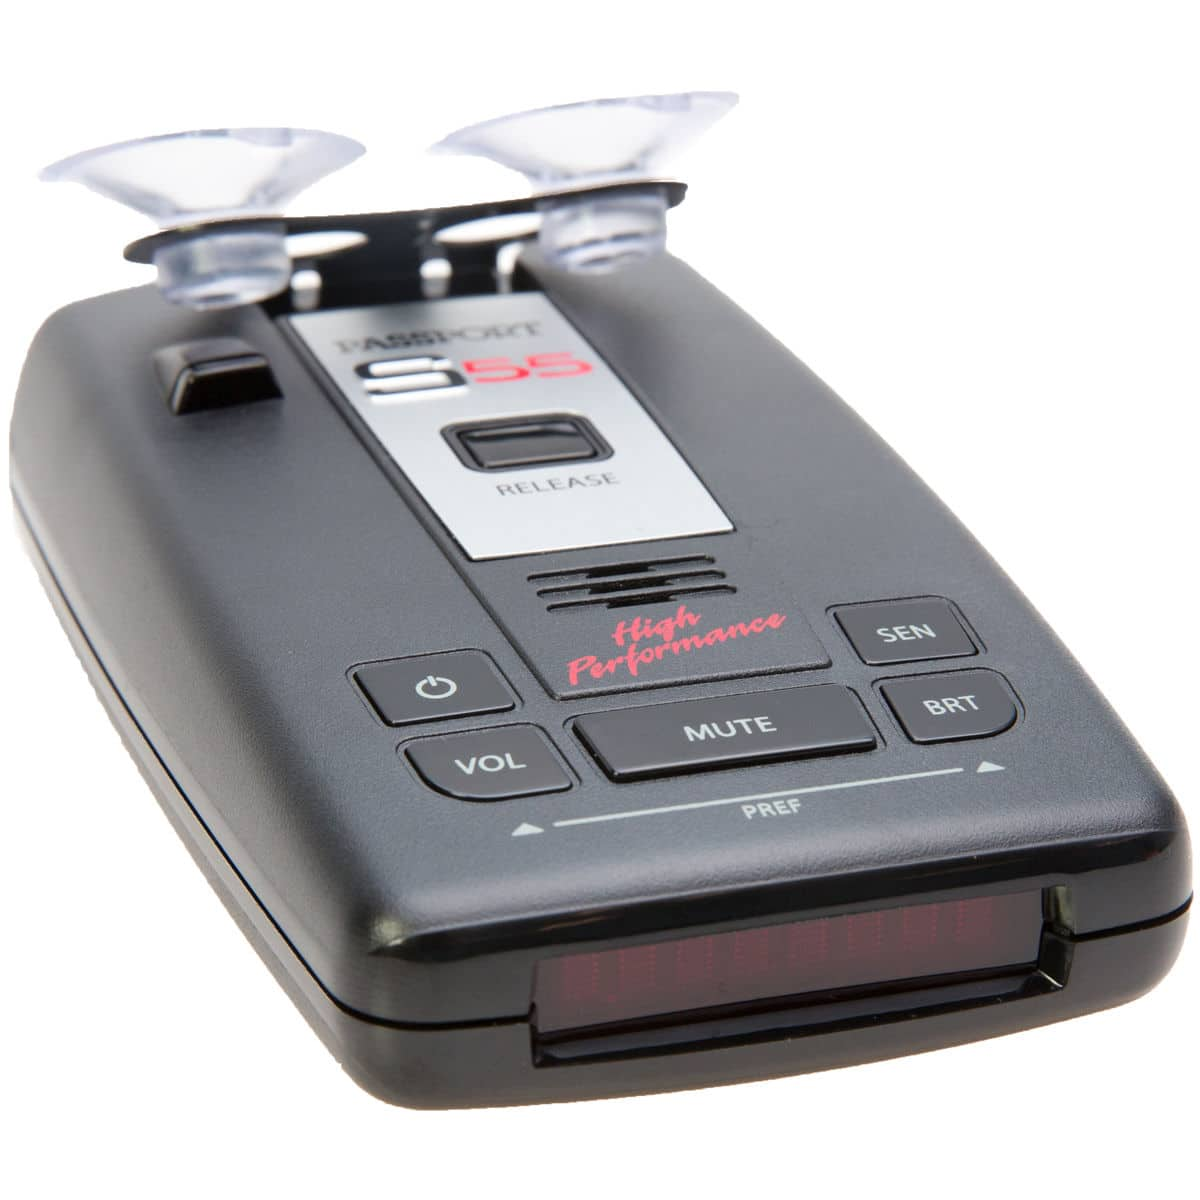 Escort Passport S55 High Performance Pro Radar and Laser Detector w/ DSP $119 + Free Shipping (eBay Daily Deal)